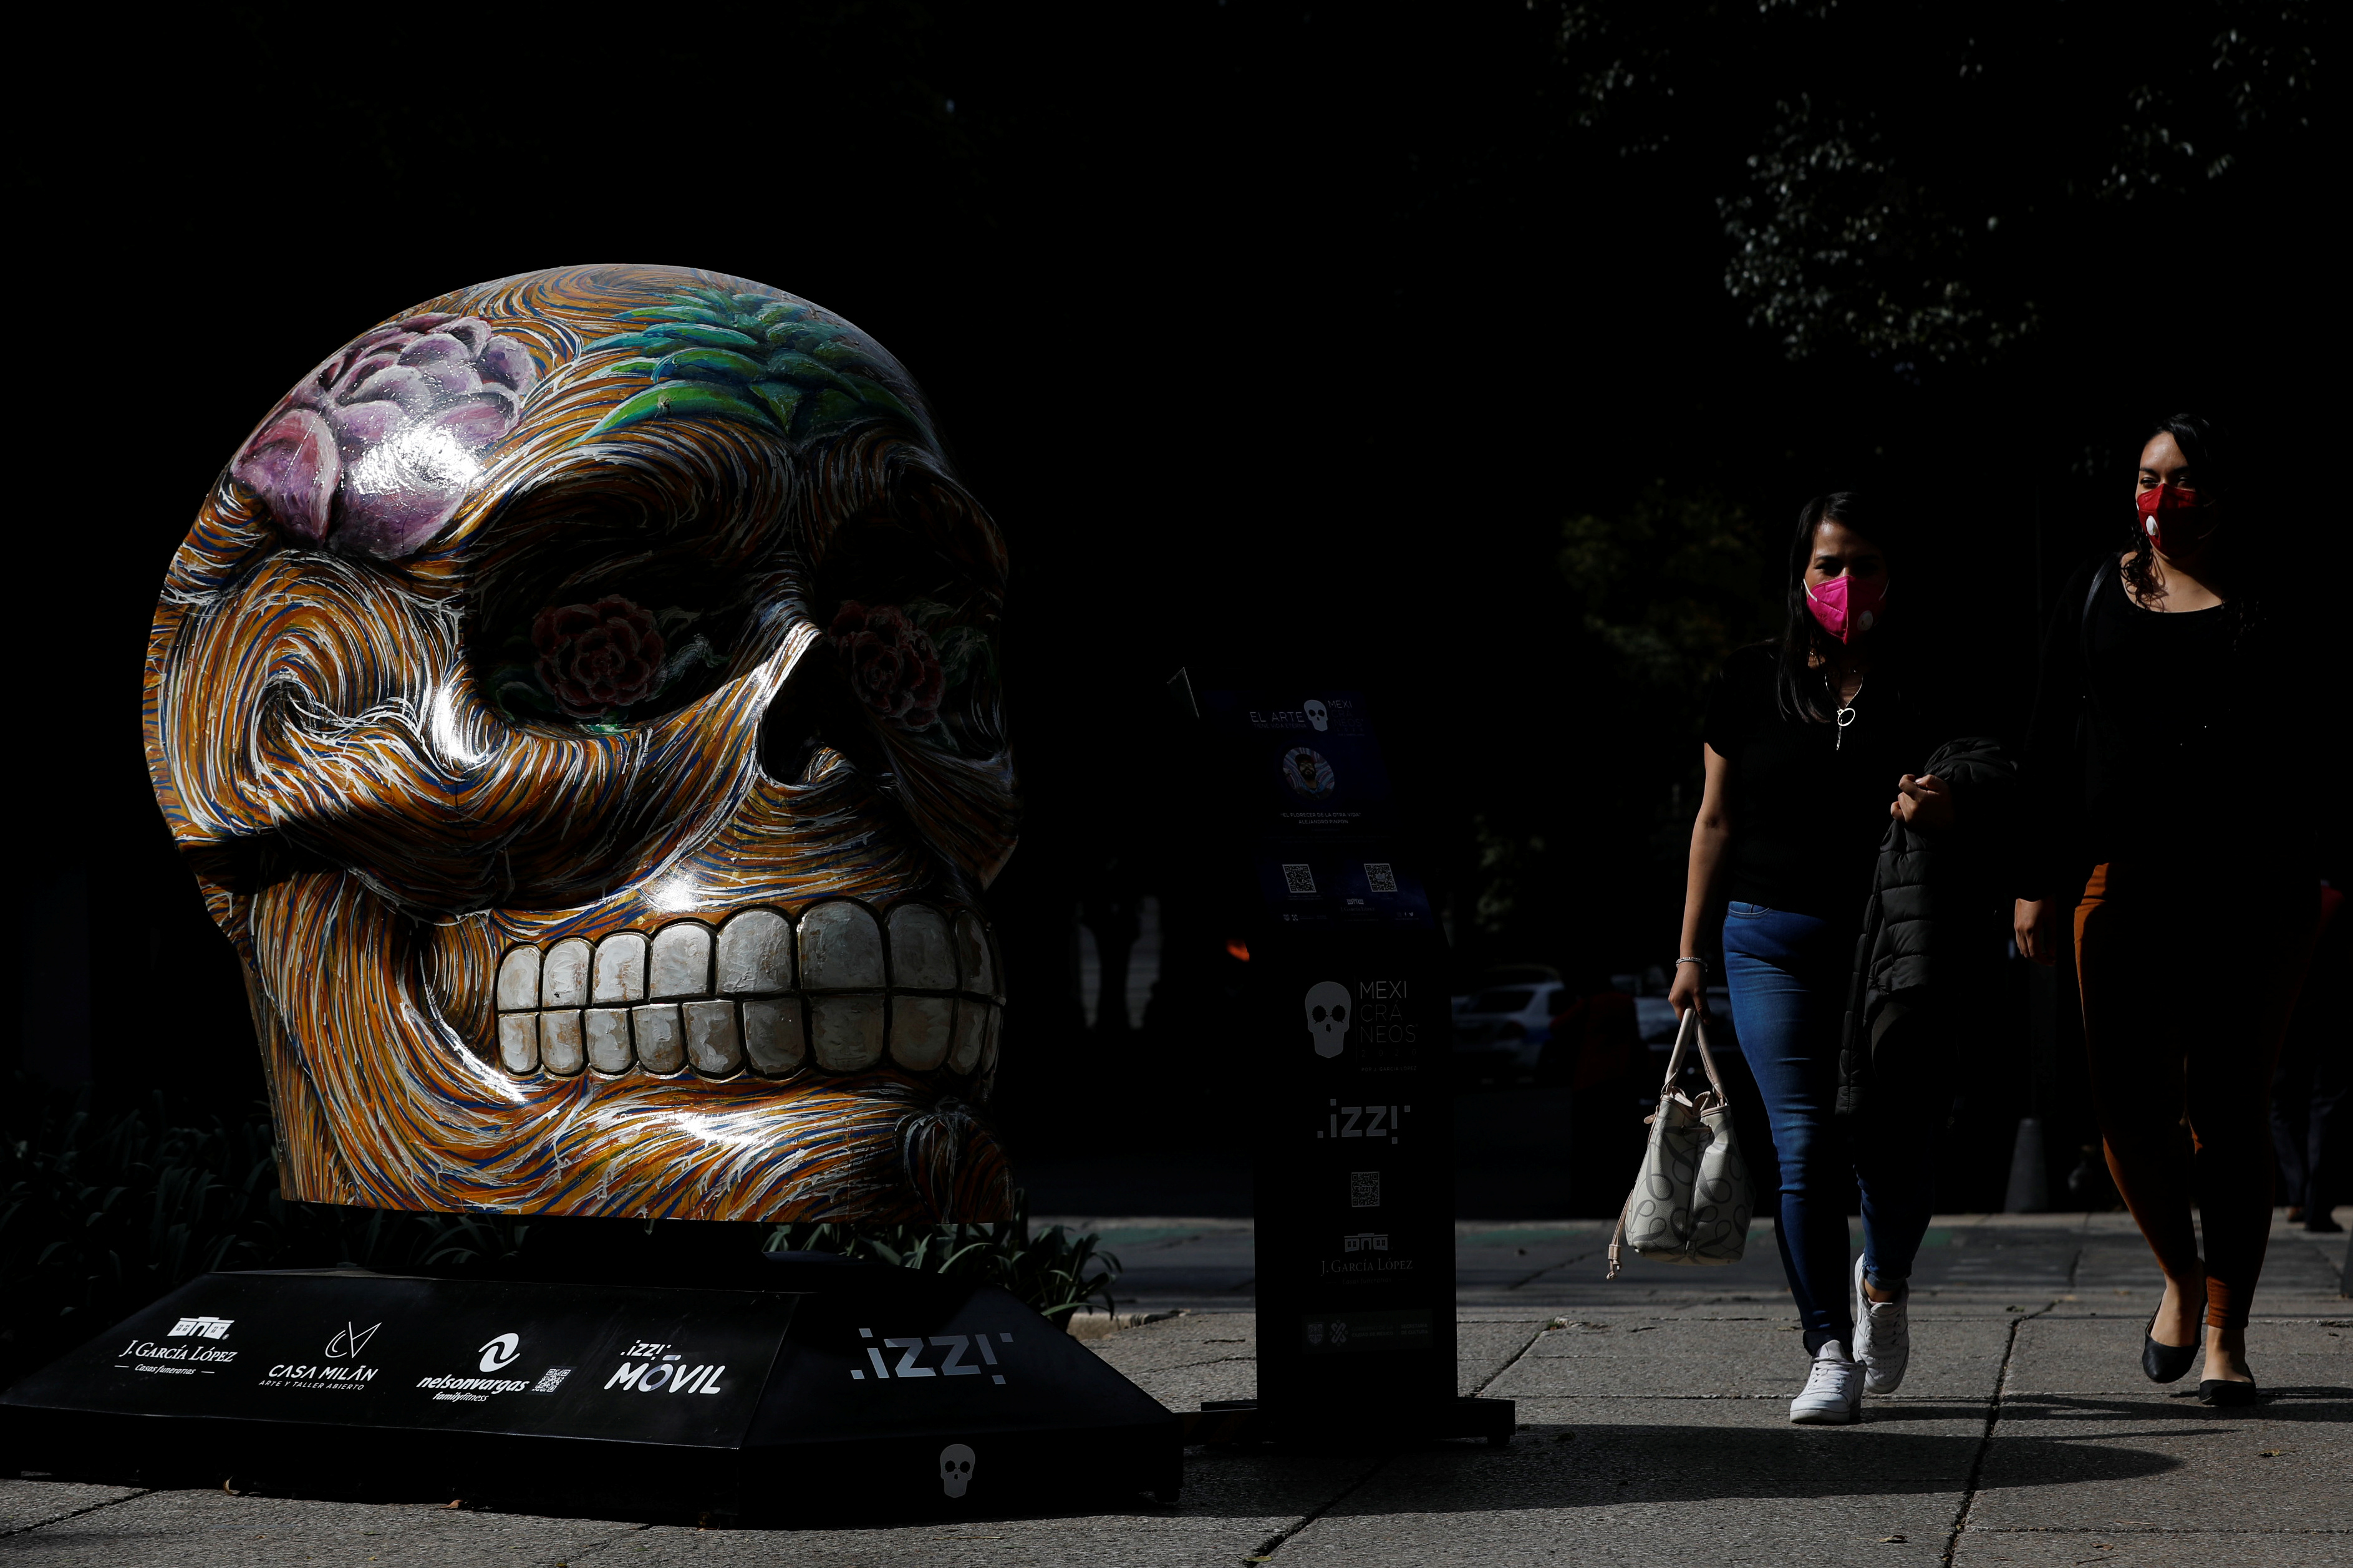 People walk by a colorful skull exhibited at Reforma avenue, as part of the festivities in the lead-up to the Day of the Dead celebration, in Mexico City, Mexico October 13, 2020. REUTERS/Carlos Jasso